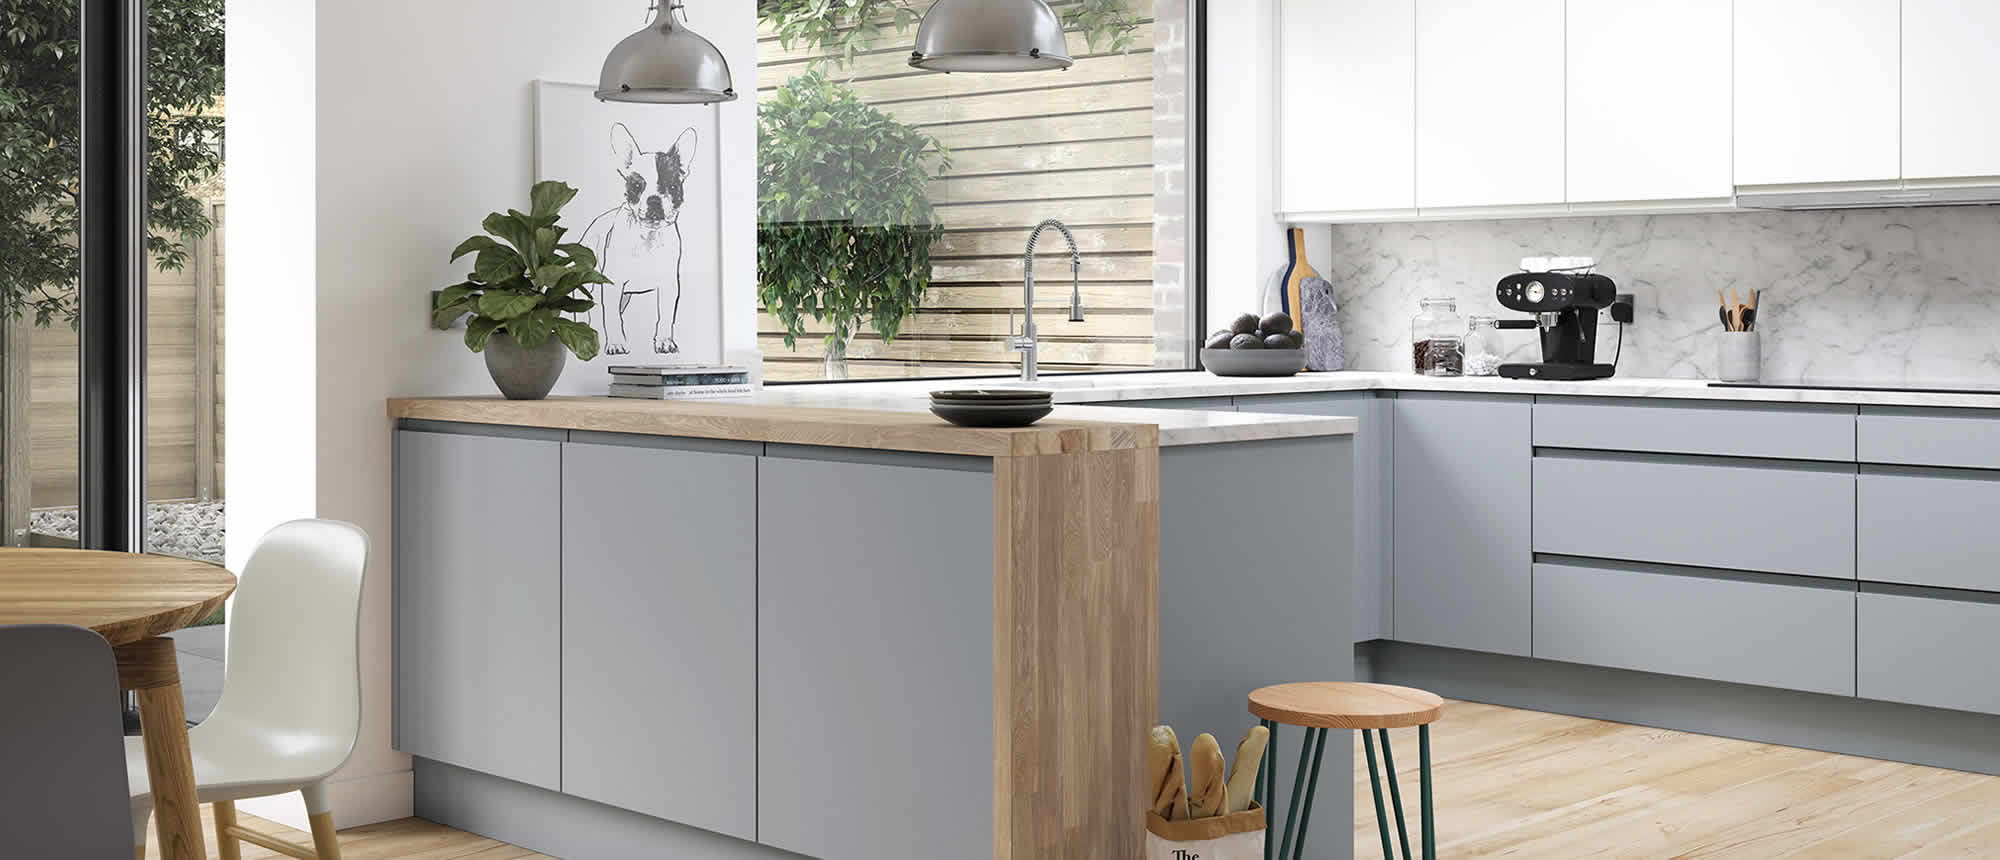 Halcyon Kitchens - Passionate about kitchens